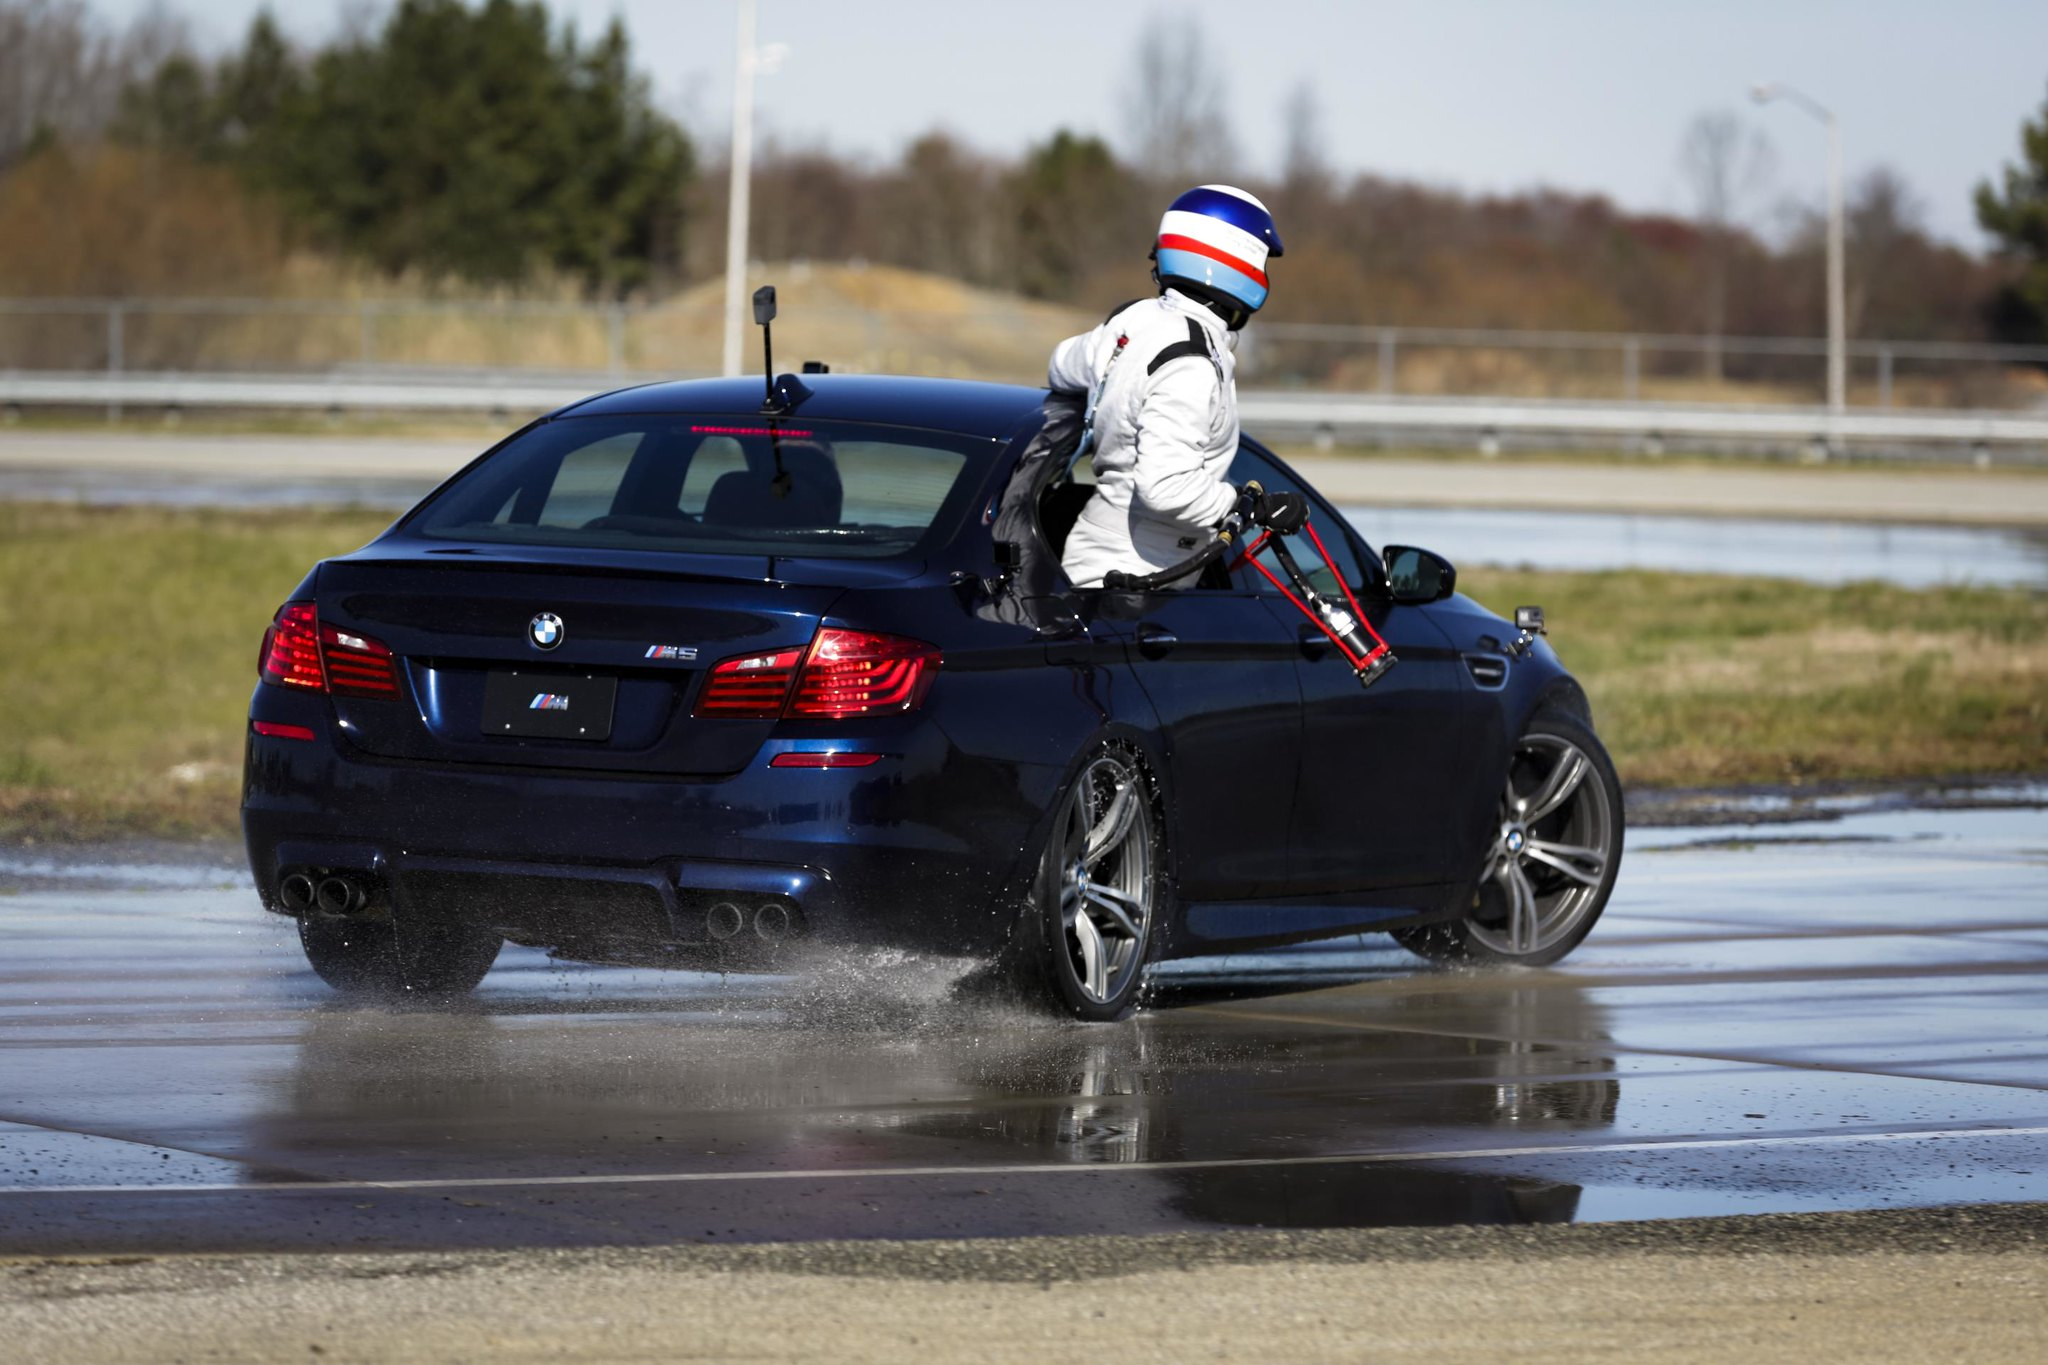 BMW sets two Guinness World Records titles for drifting in the 2018 M5